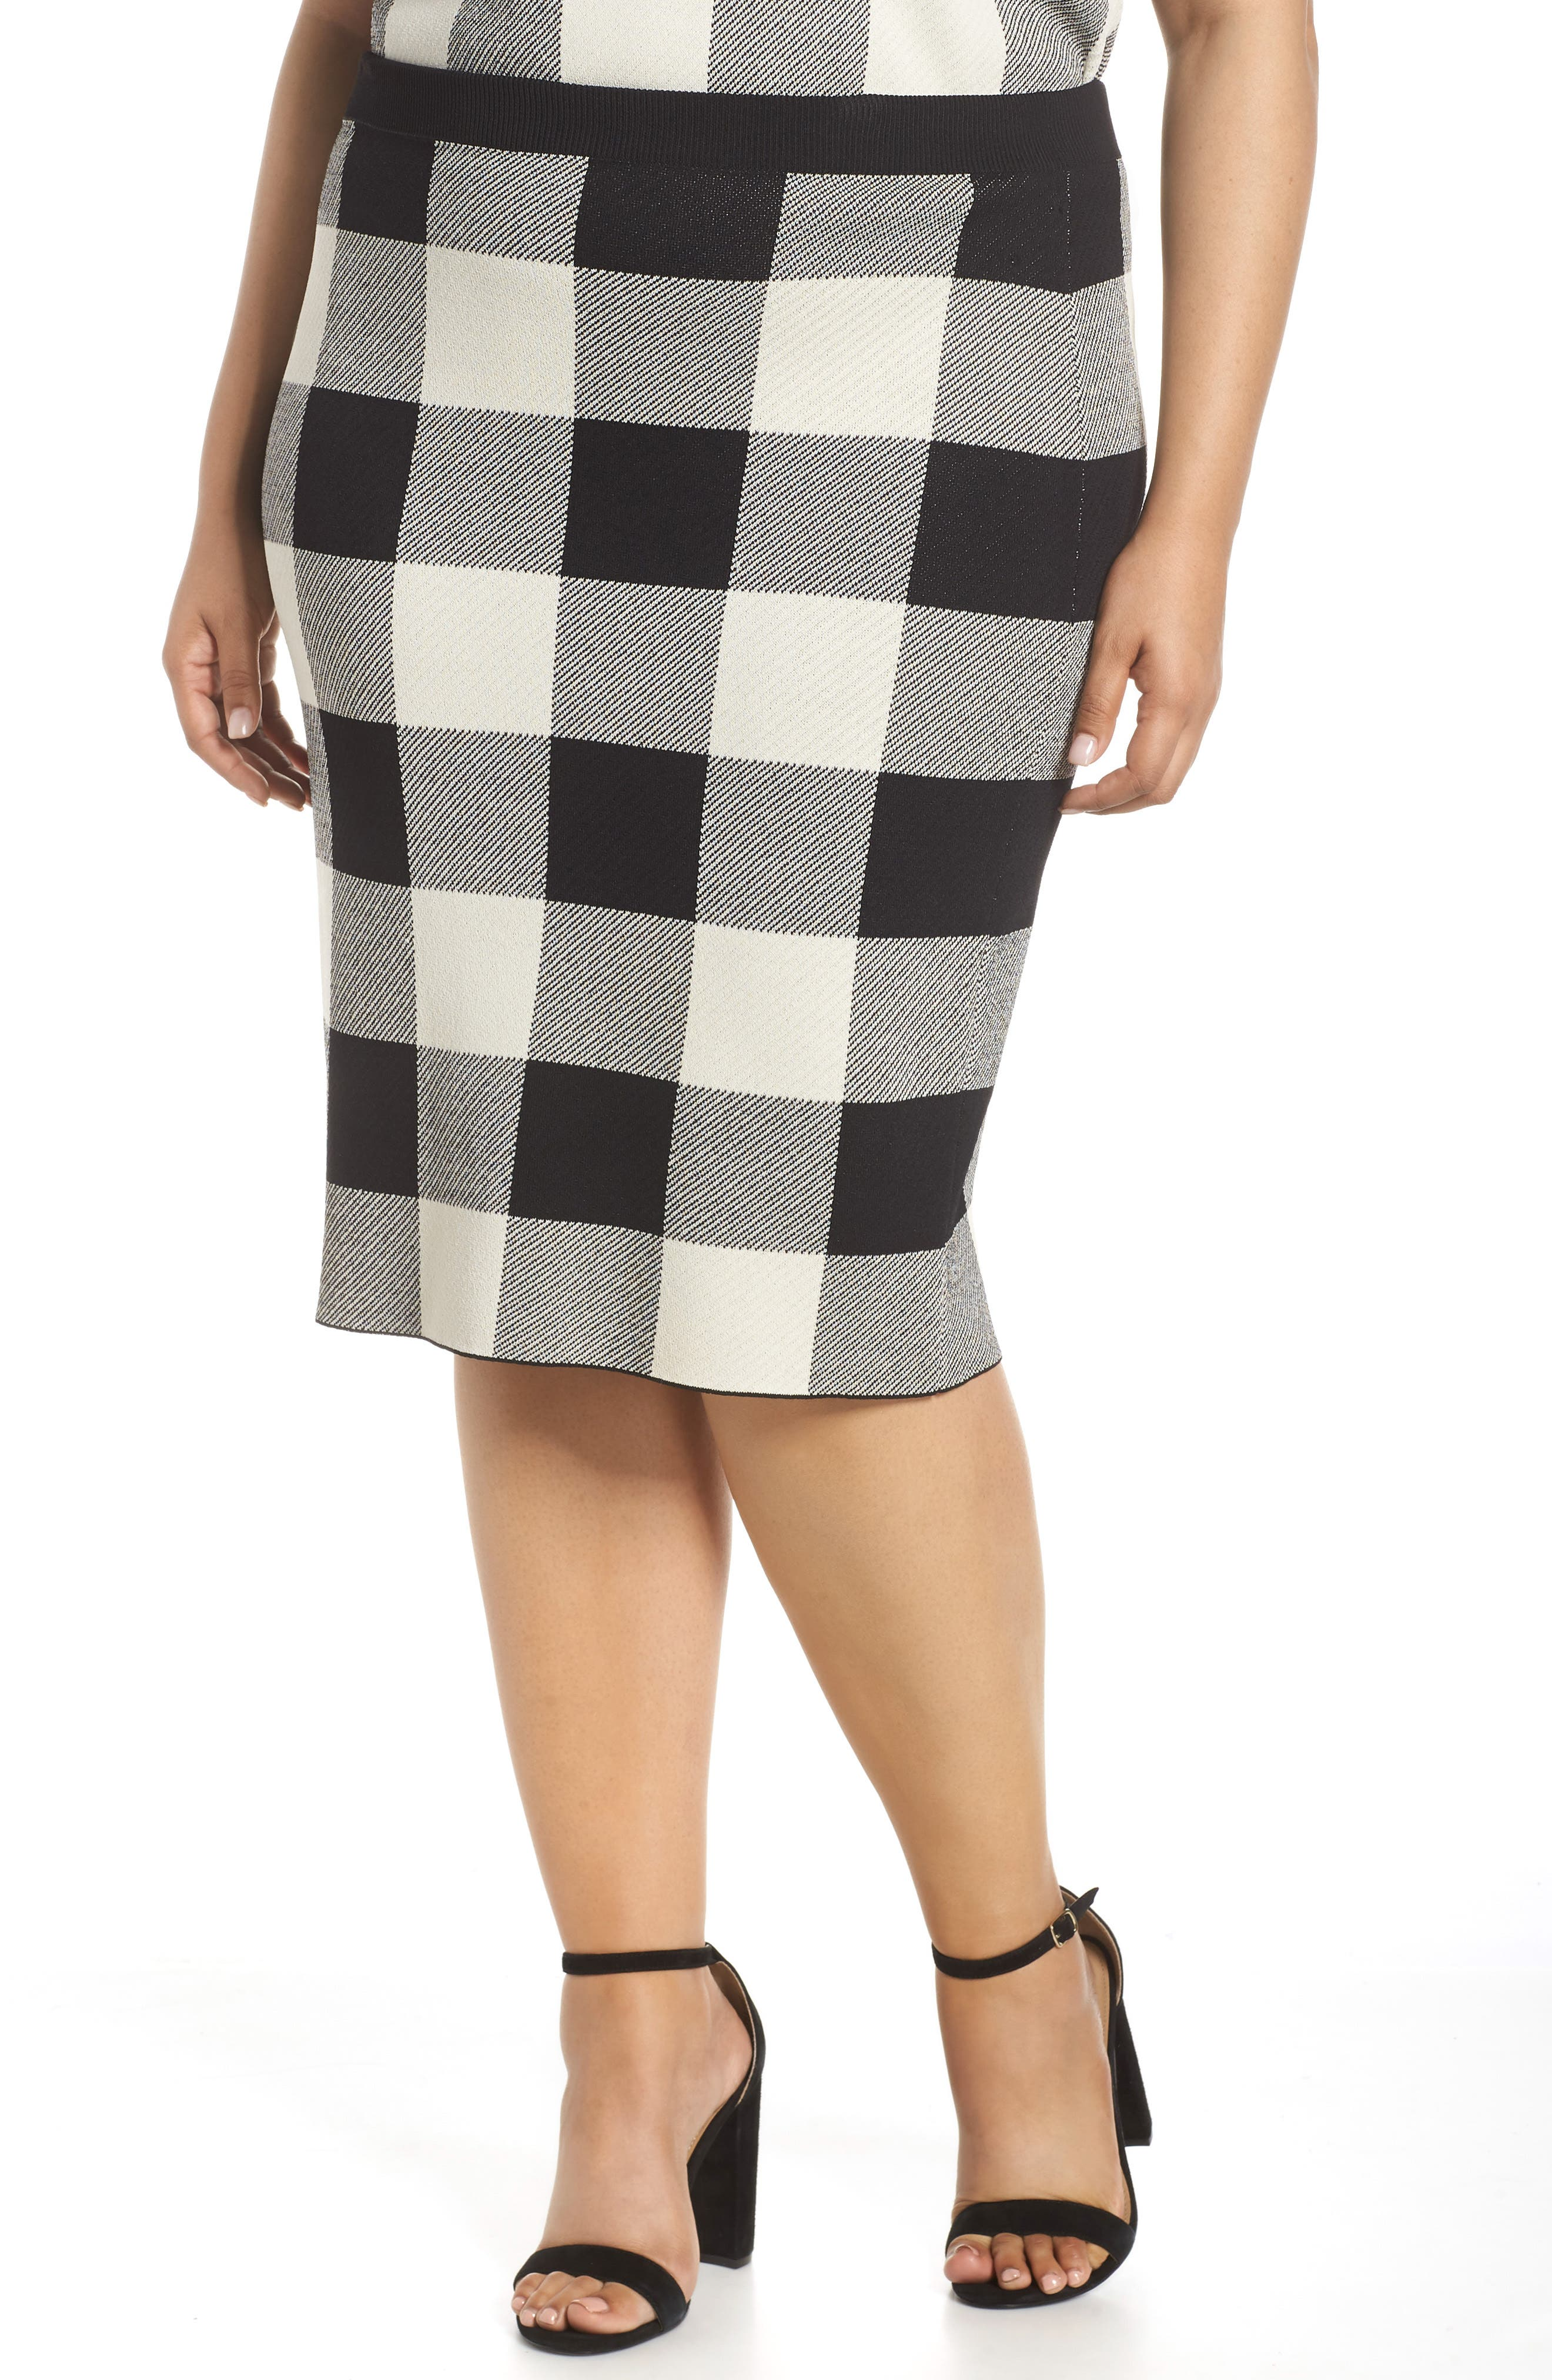 RACHEL RACHEL ROY Raj Sweater Skirt, Main, color, BLACK/CREAM